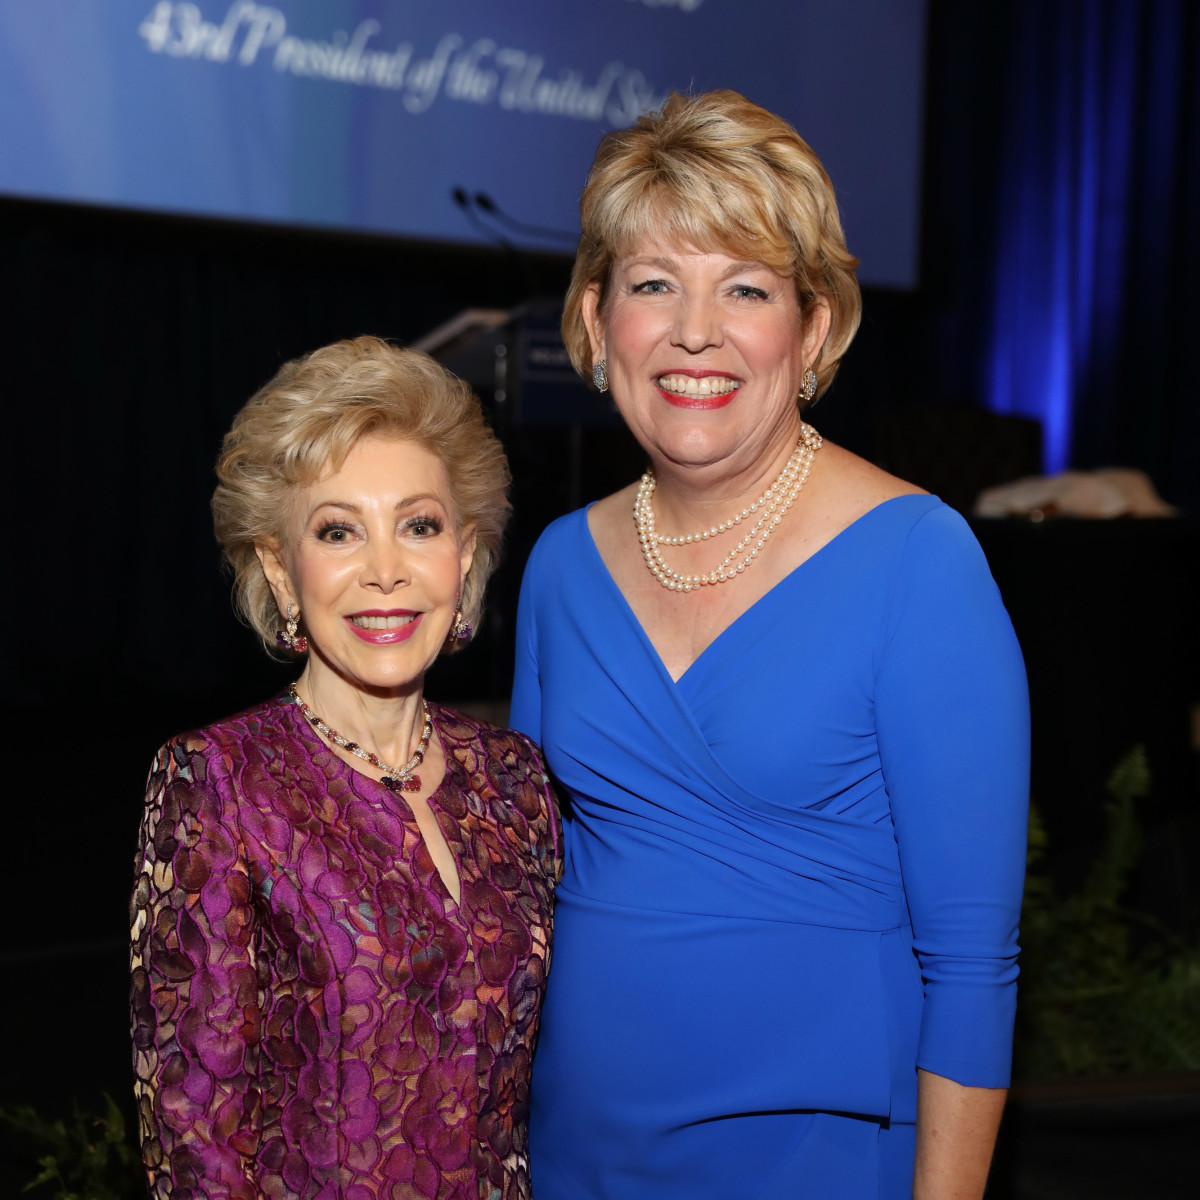 Holocaust Museum LBJ award Margaret Alkek Williams, Dr. Kelly J. Zúñiga, CEO of Holocaust Museum Houston